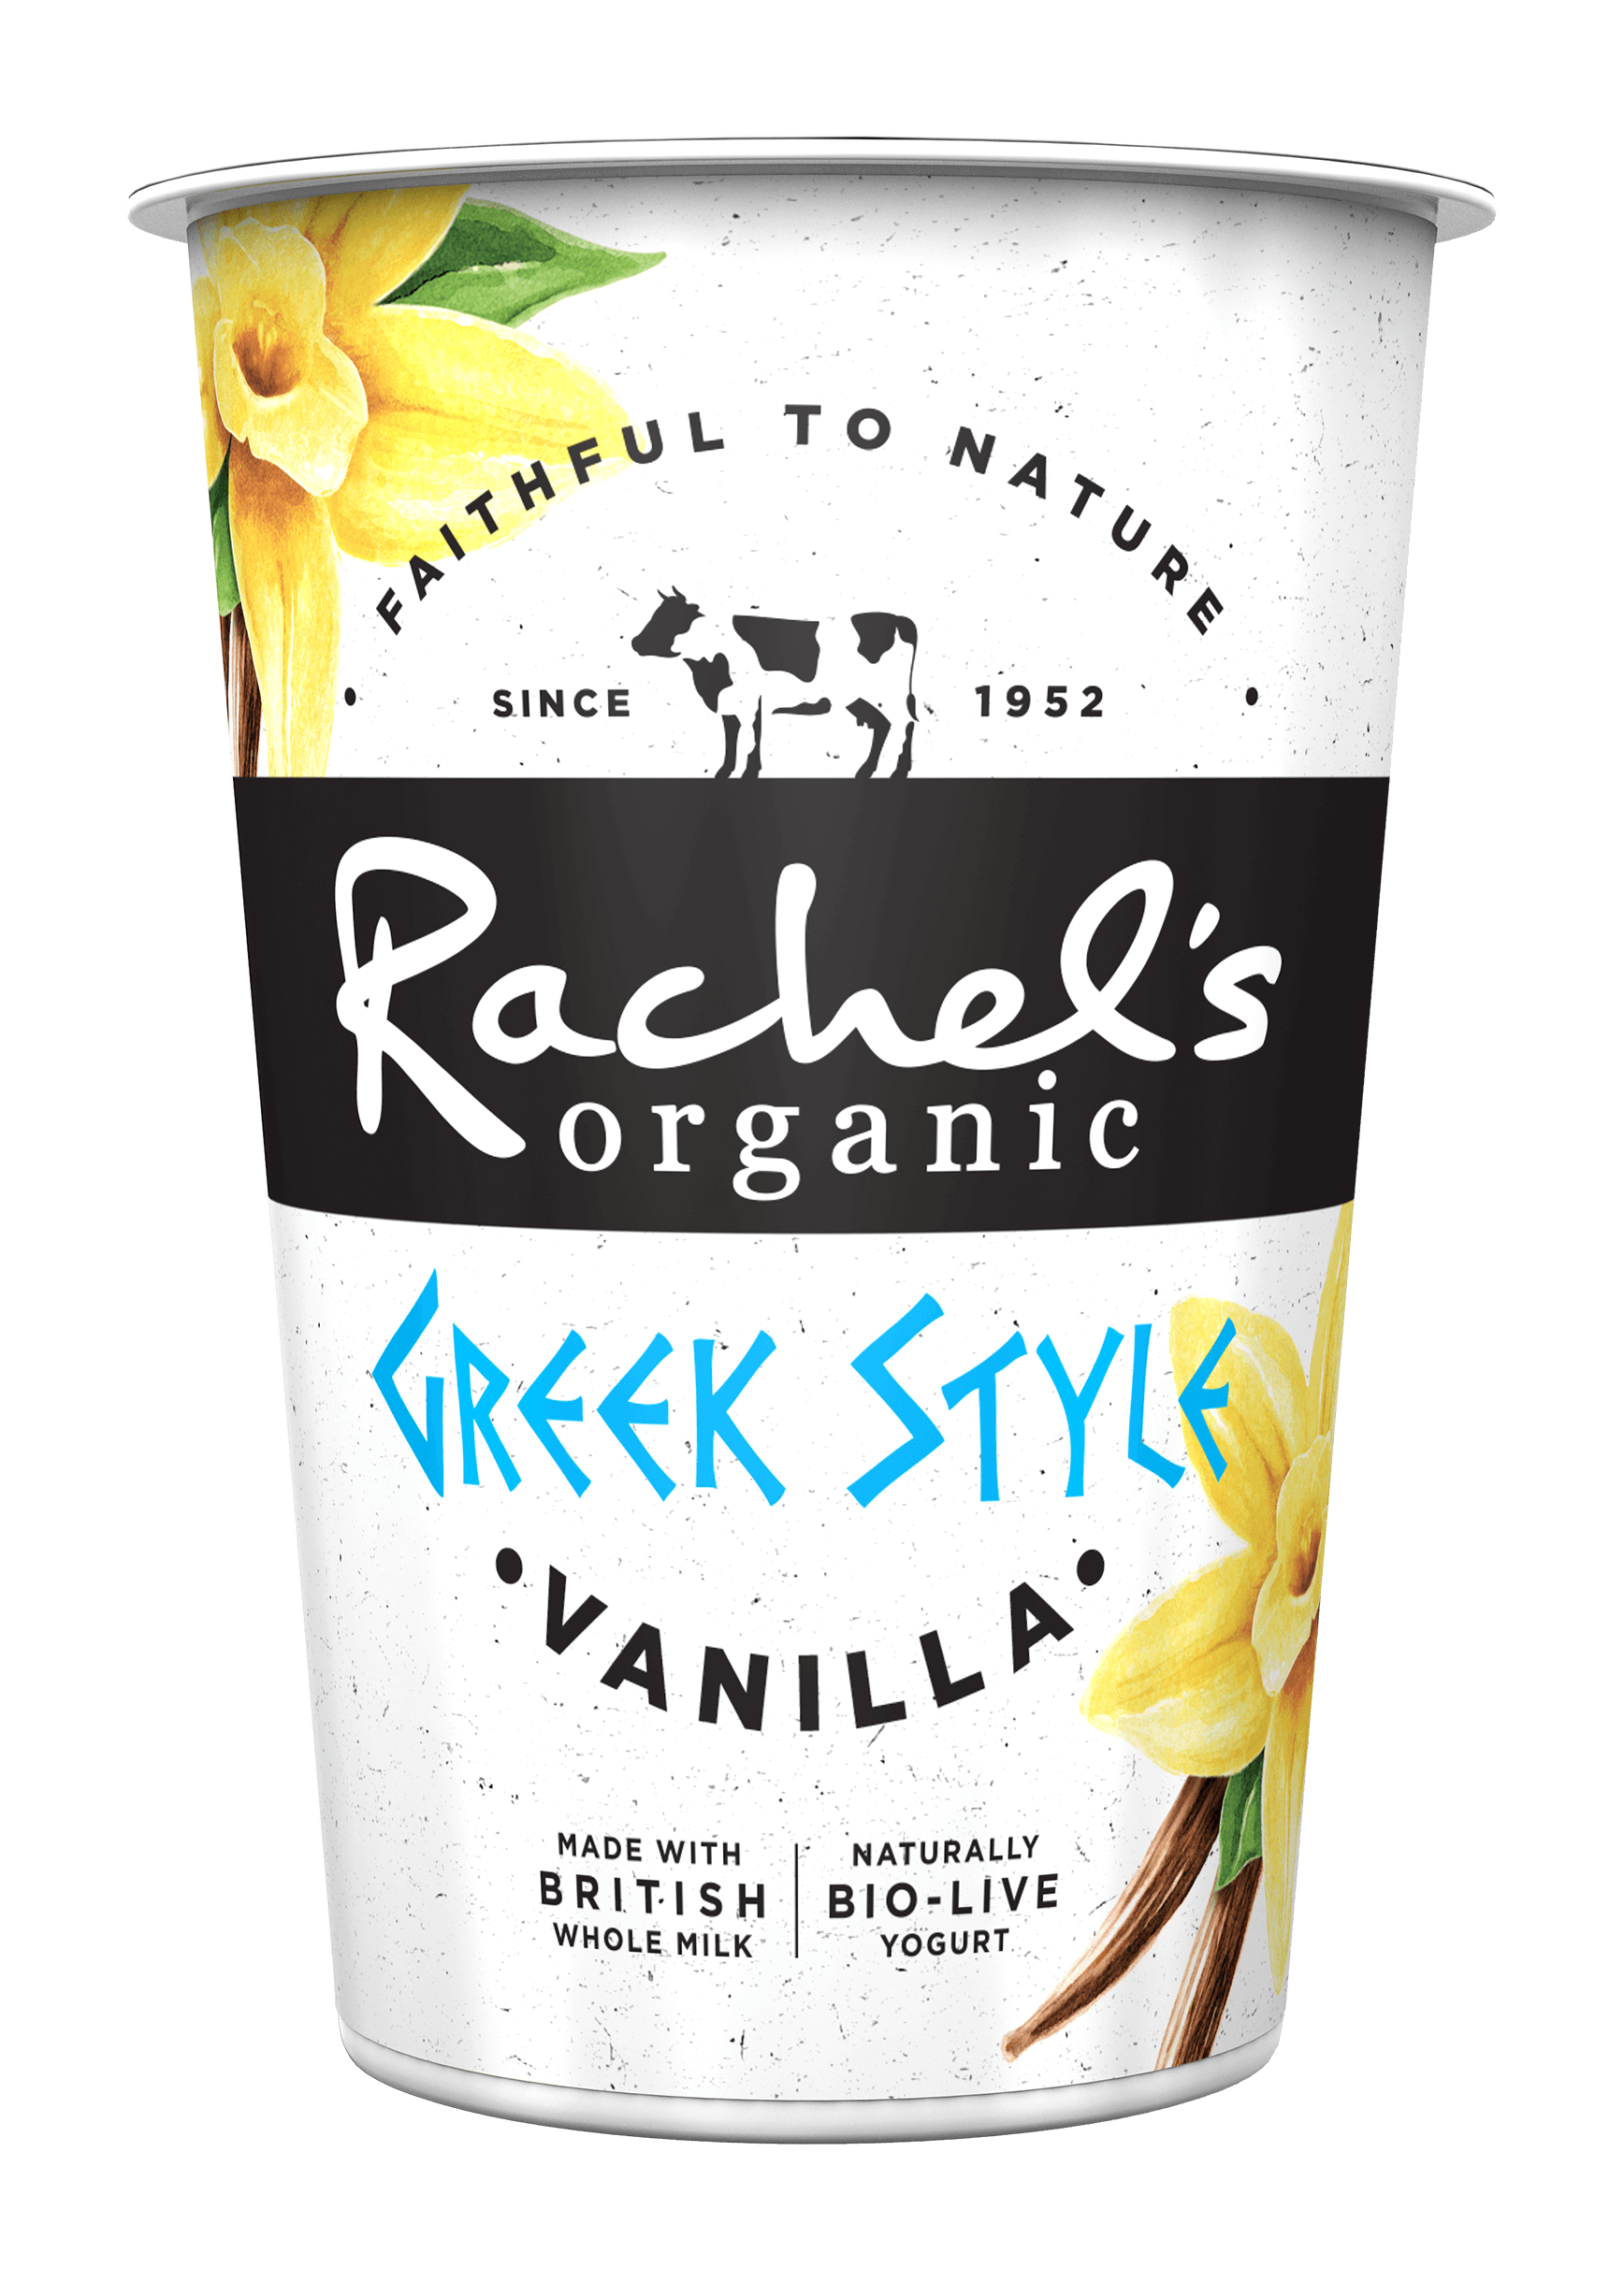 https://www.rachelsorganic.co.uk/wp-content/uploads/2019/06/5021638000953-3D-RACHELS-450G-POT-GREEK-STYLE-VANILLA.png